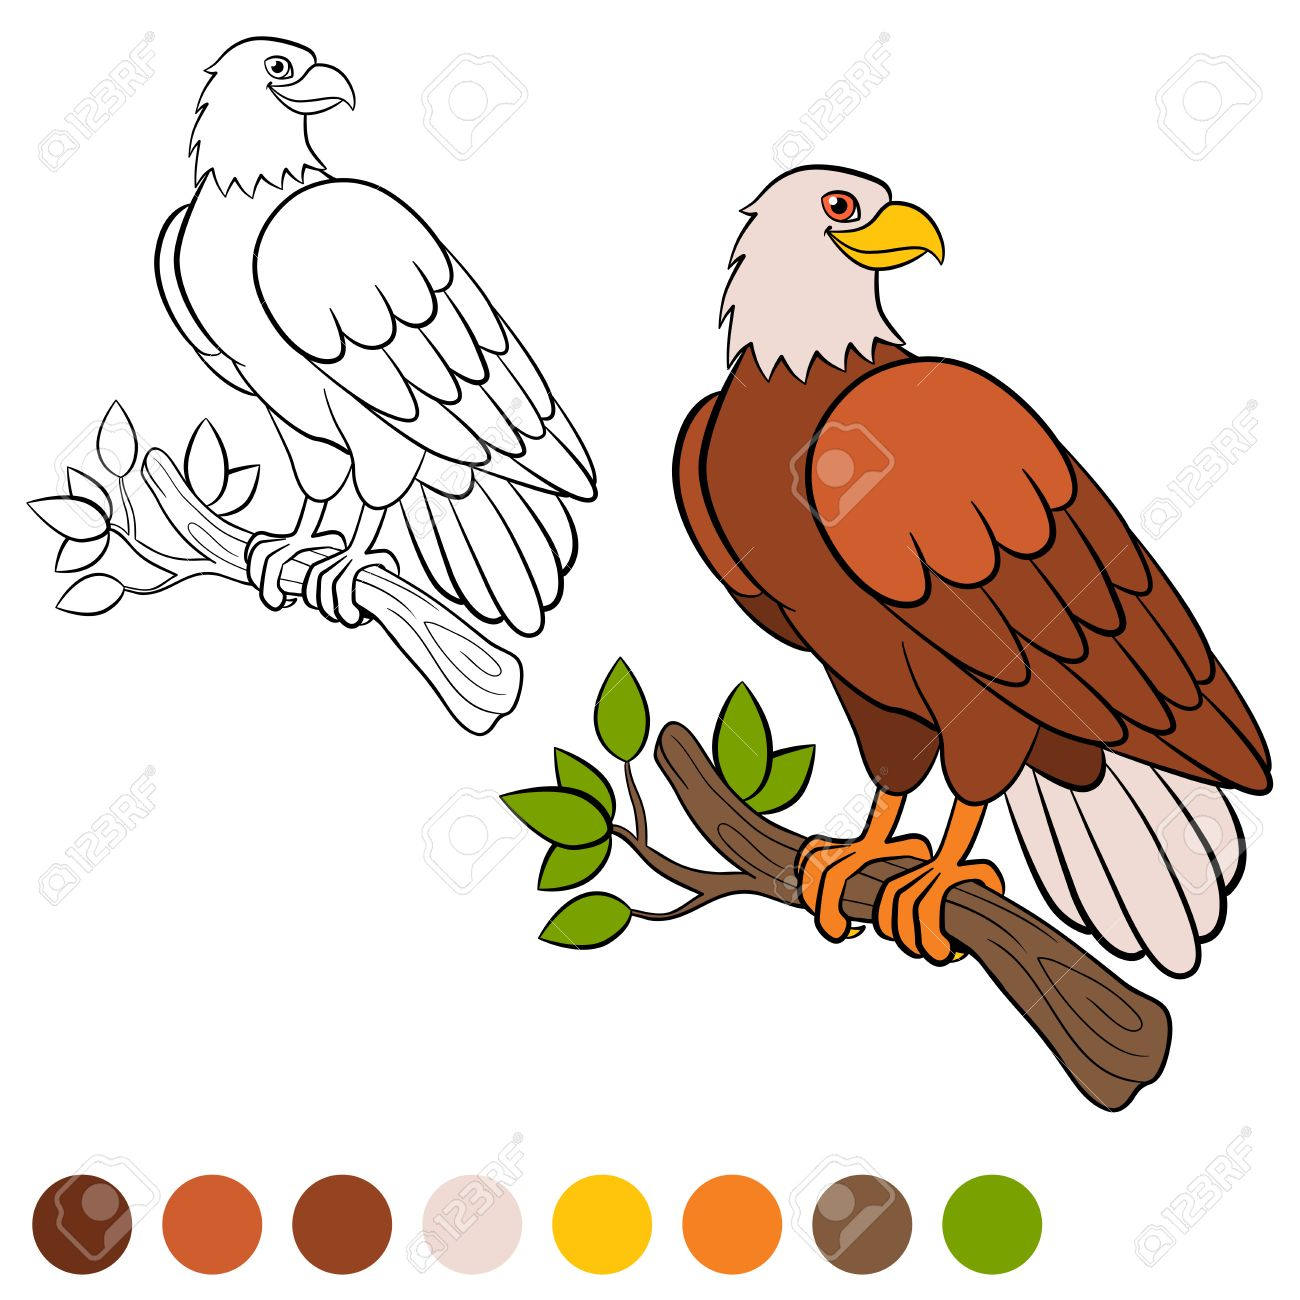 Patriotic eagle coloring pages - Coloring Page Color Me Eagle Cute Bald Eagle Sits On The Tree